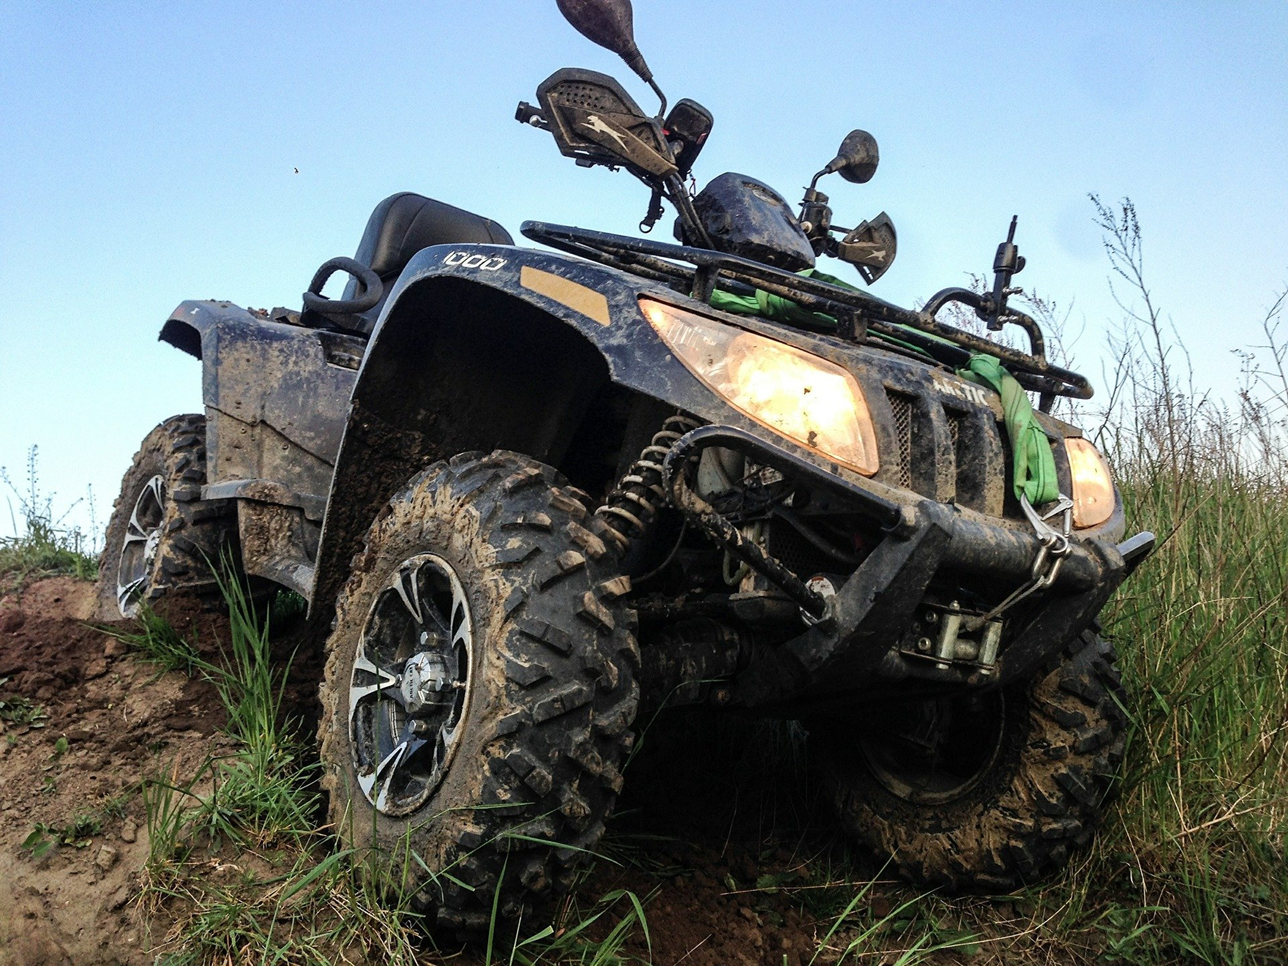 Local Groups Teaming Up to Offer Youth ATV 101 Program to Teach Safety and Other ATV Skills to Area Youth